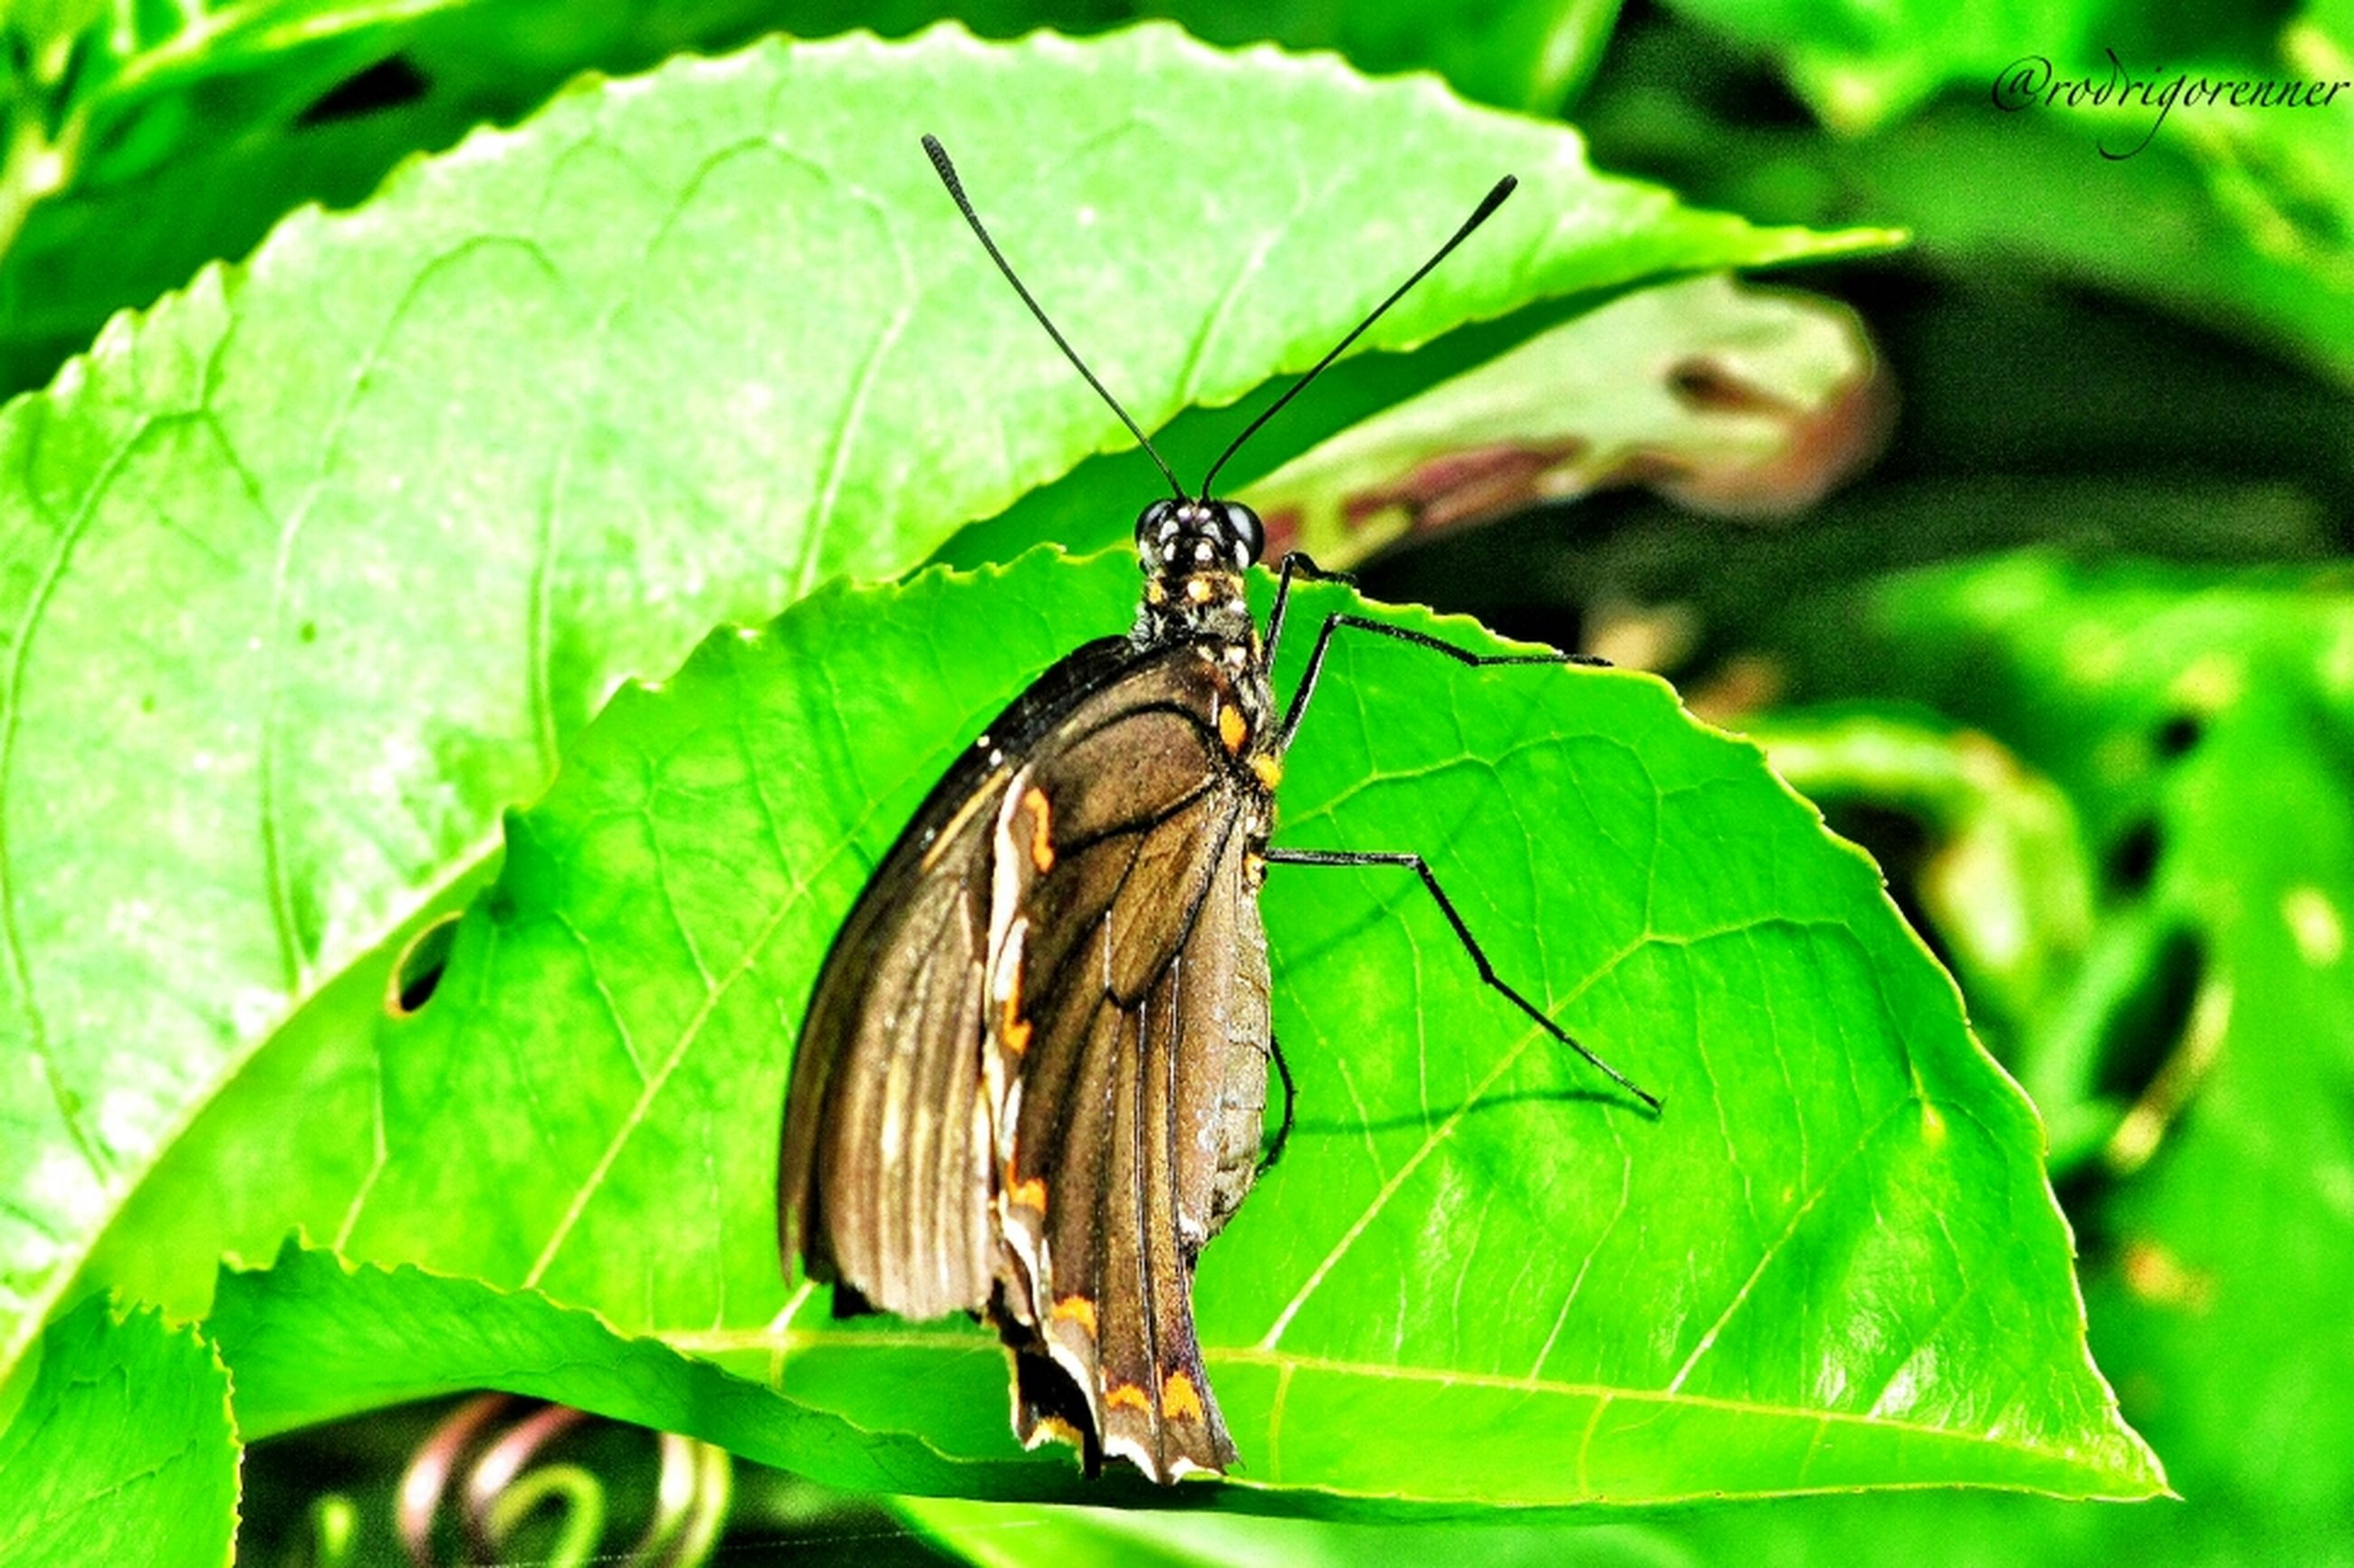 animals in the wild, animal themes, one animal, wildlife, insect, leaf, green color, butterfly - insect, close-up, focus on foreground, animal wing, animal markings, animal antenna, butterfly, full length, perching, nature, zoology, plant, natural pattern